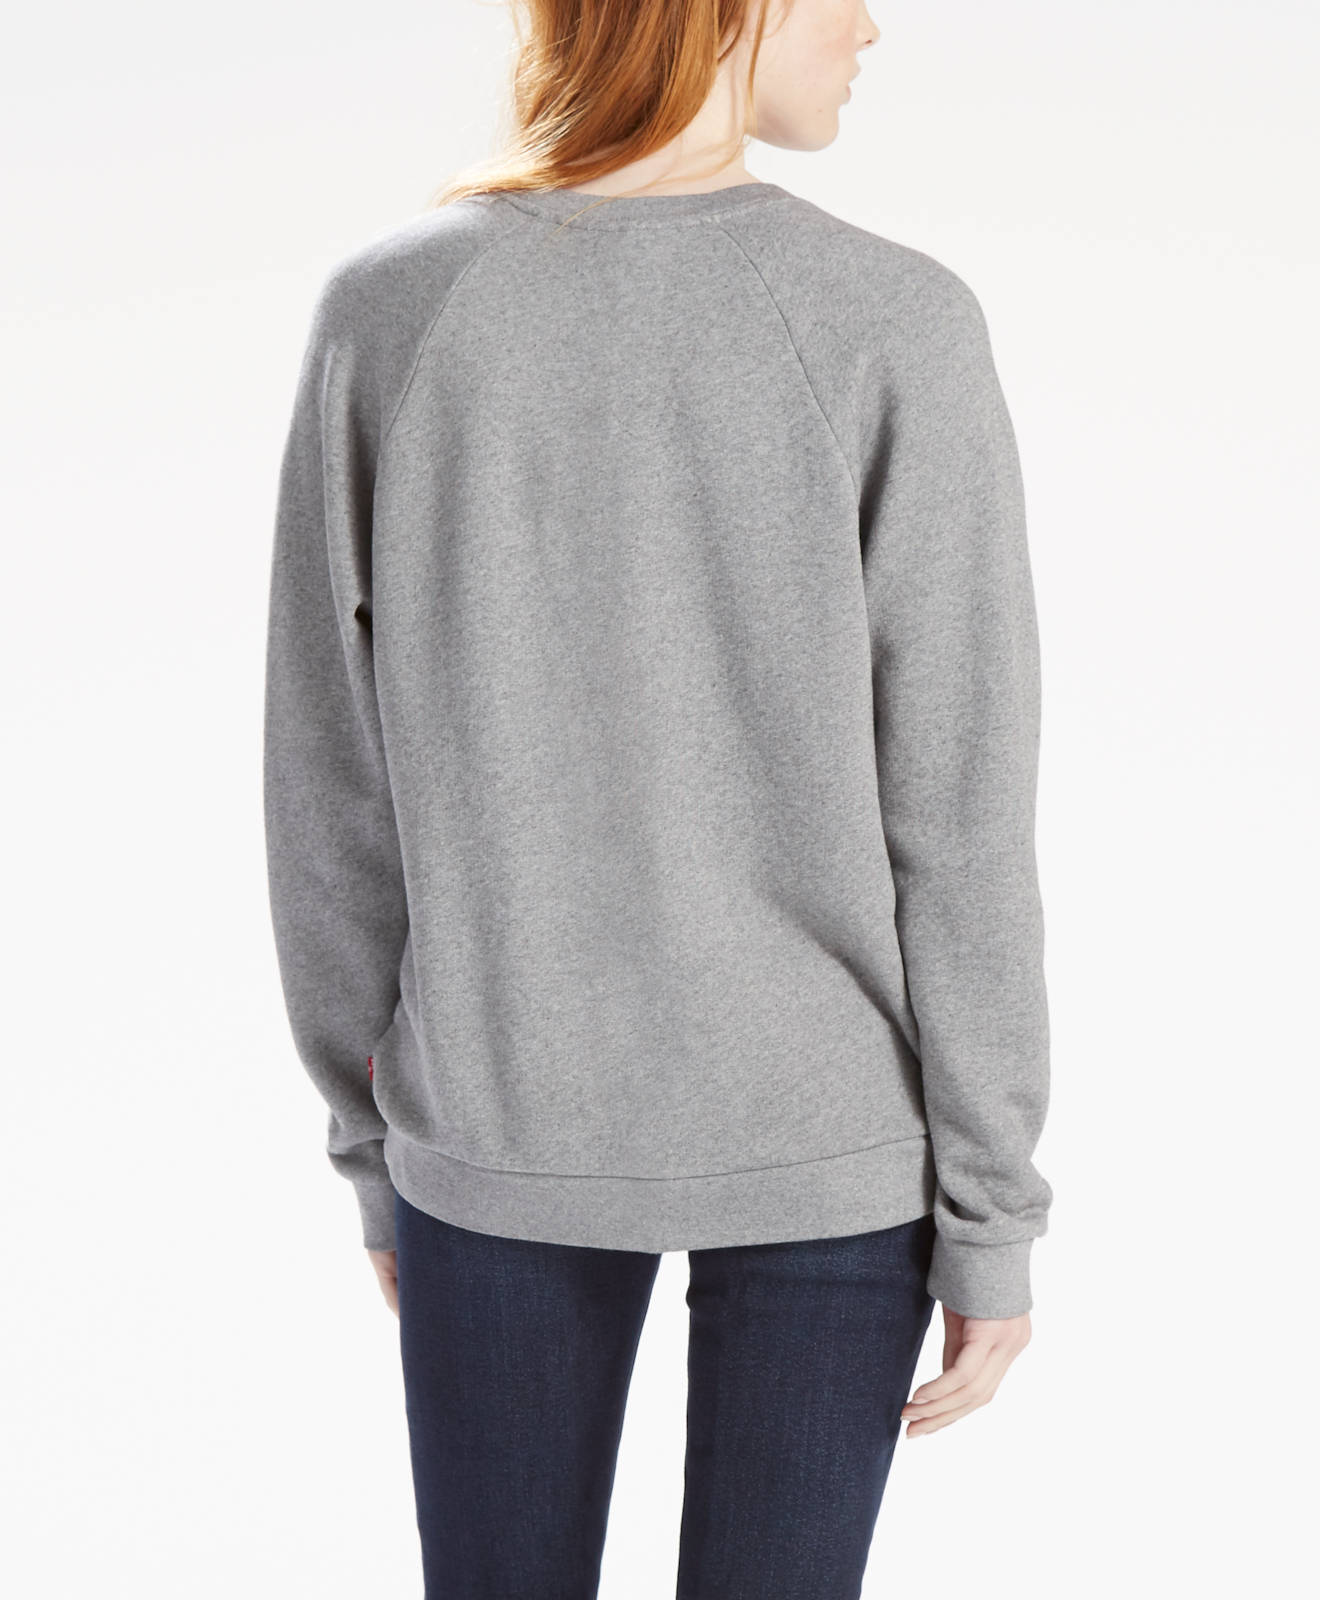 Levi-s-Damen-Pullover-Sweater-Sweatshirt-GRAPHIC-FLEECE-BATWING-SMOK-29717-000